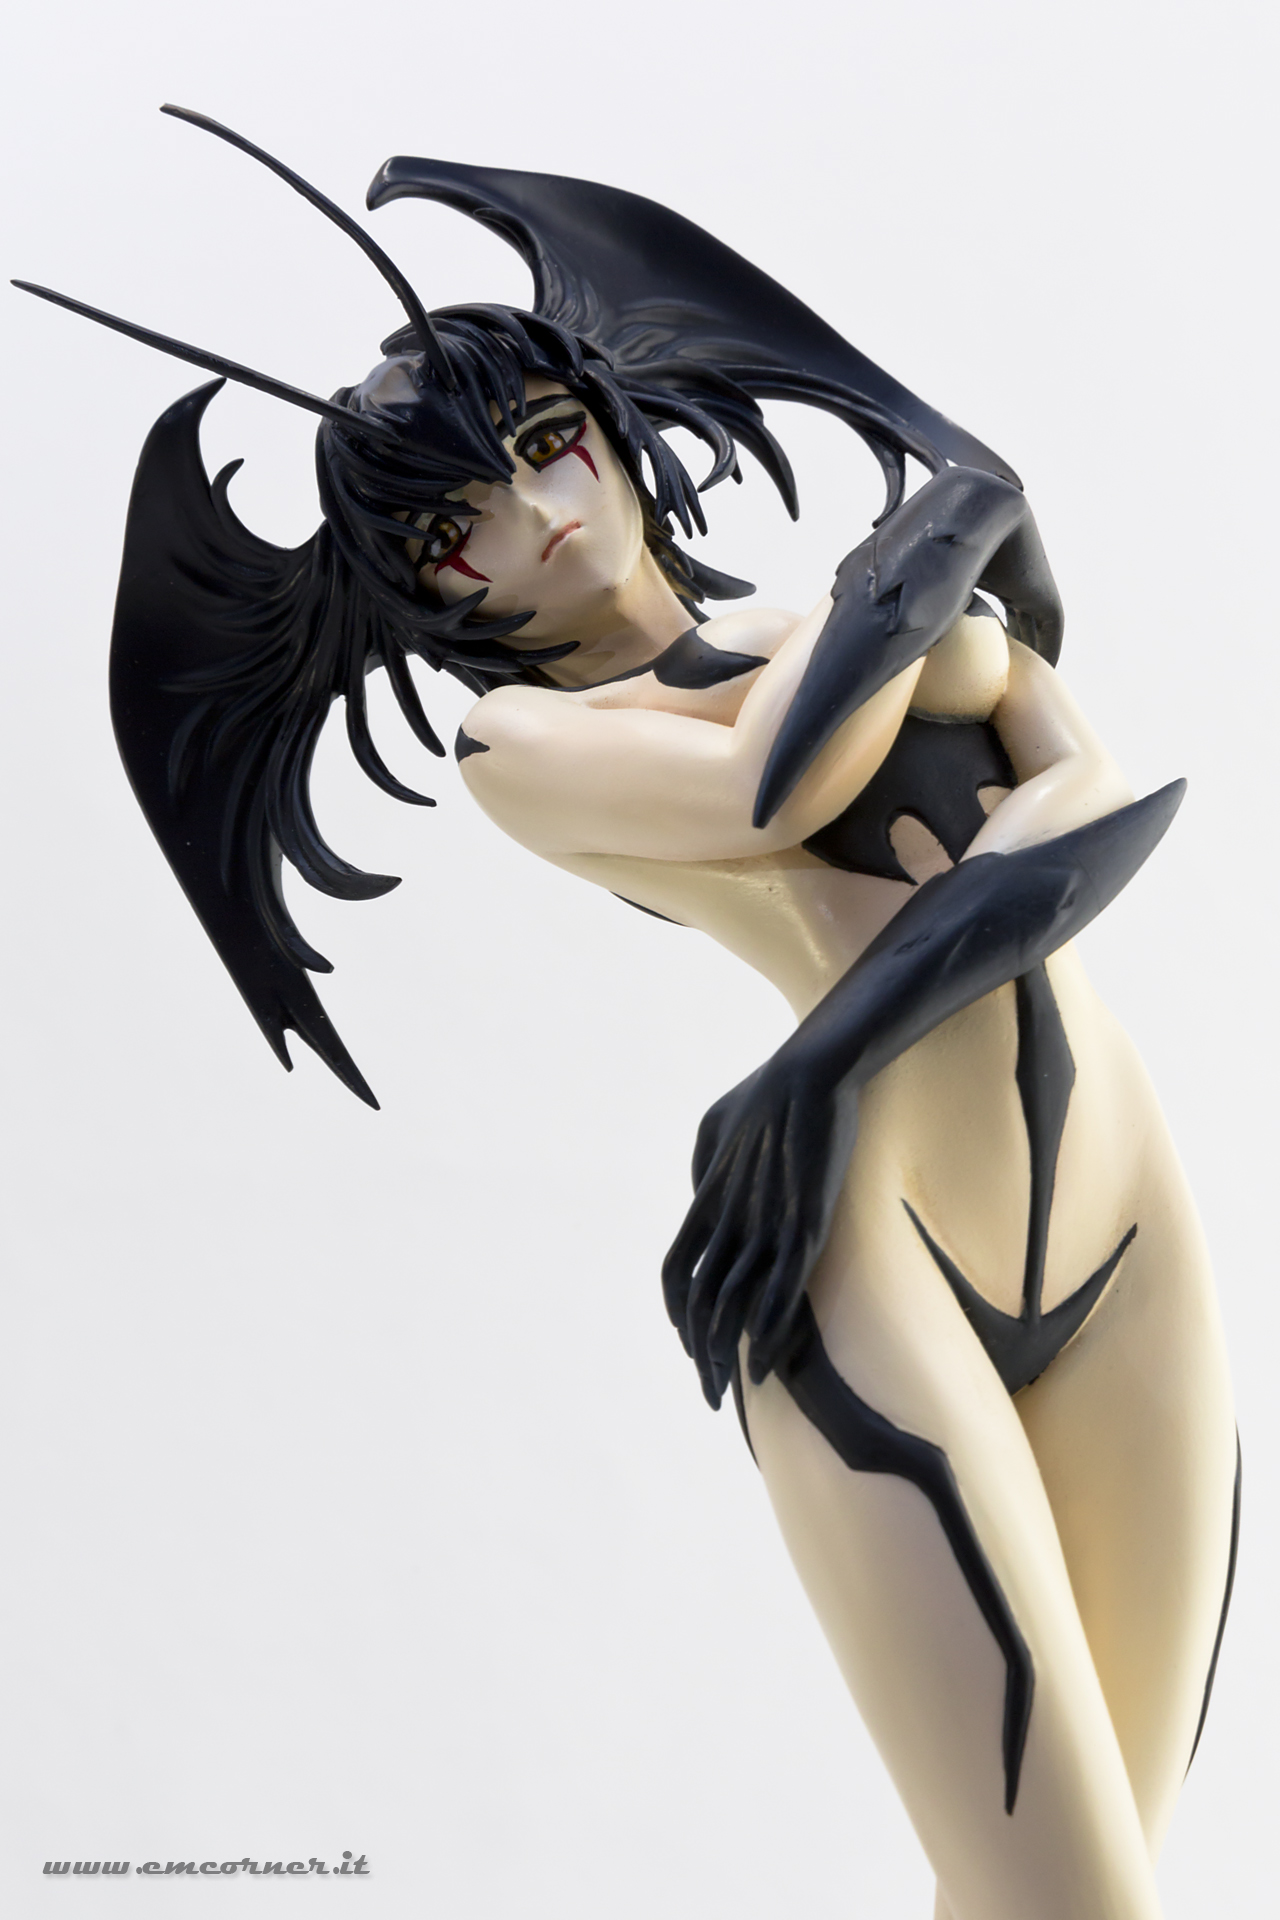 new-line-devilman-devil-lady-pre-painted-coldcast-7_-emcorner-it_